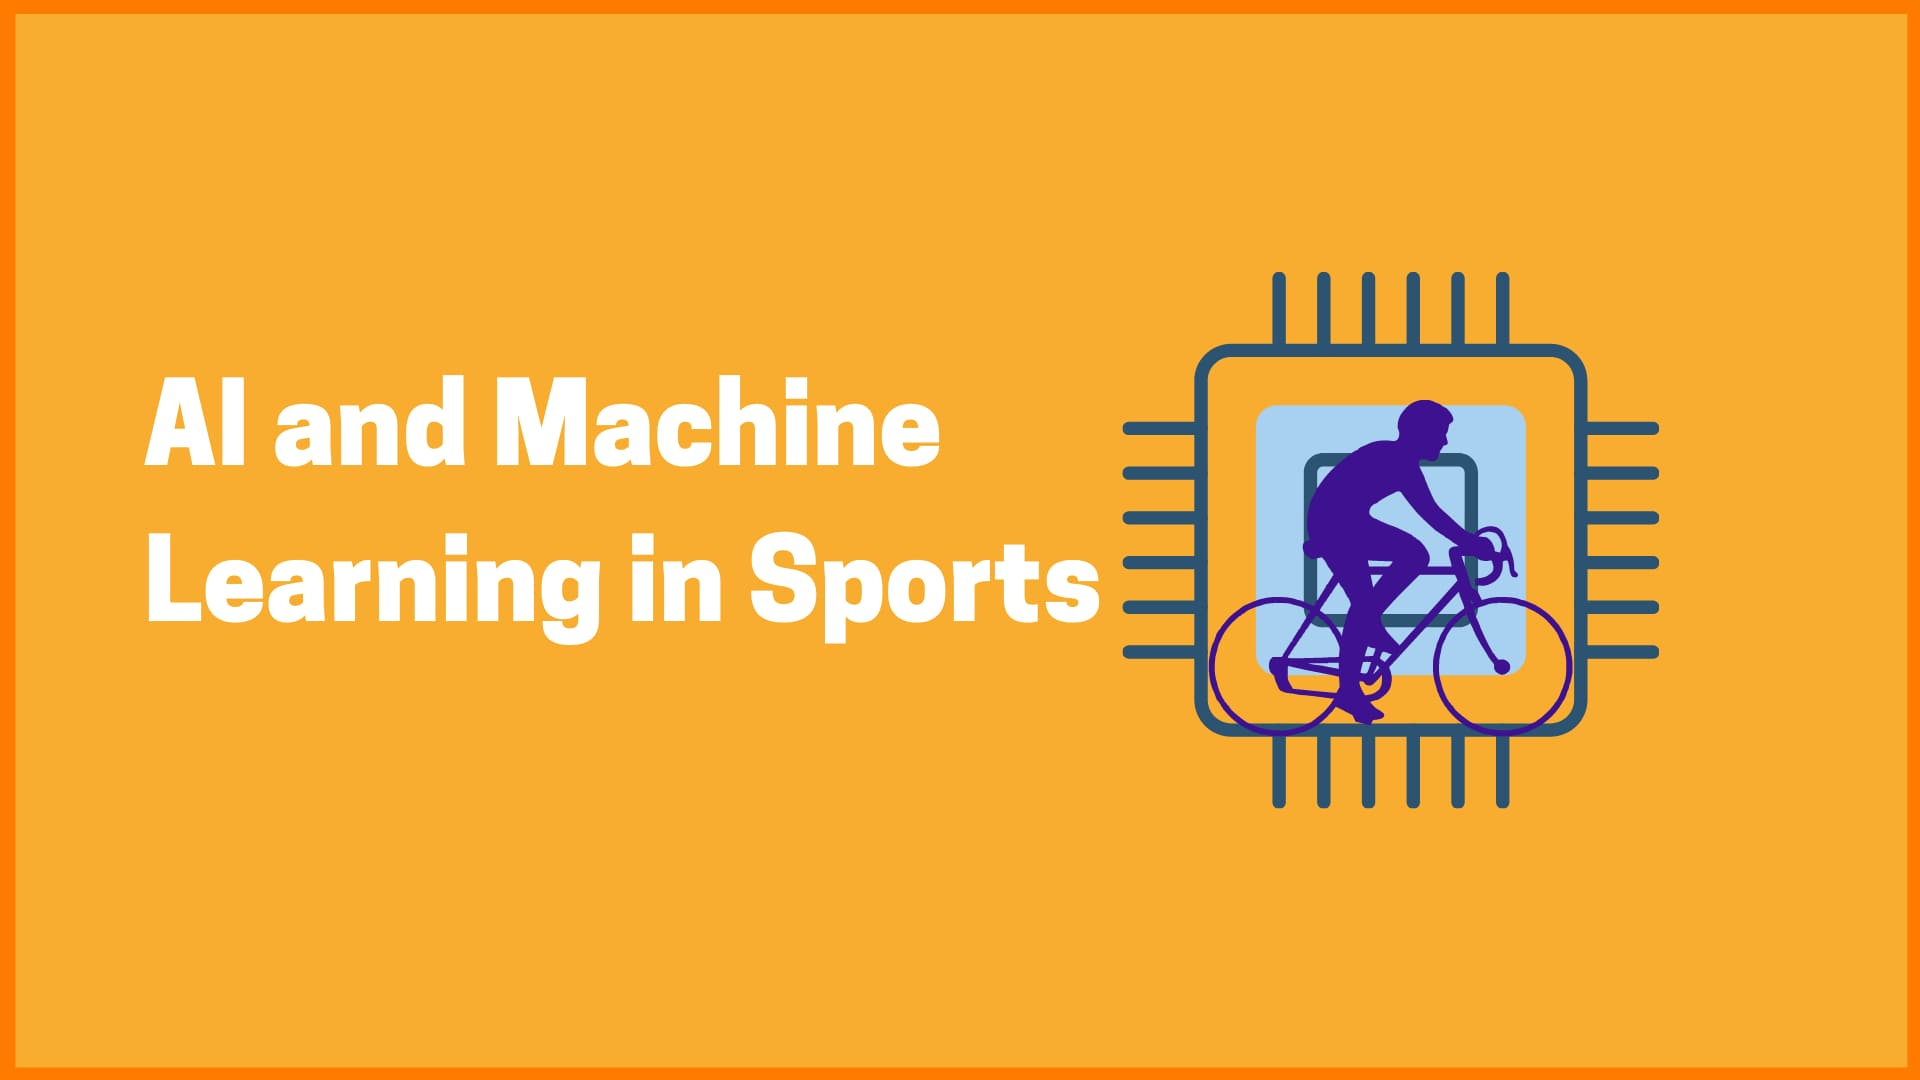 AI and Machine Learning in Sports - How it Changes The Game?